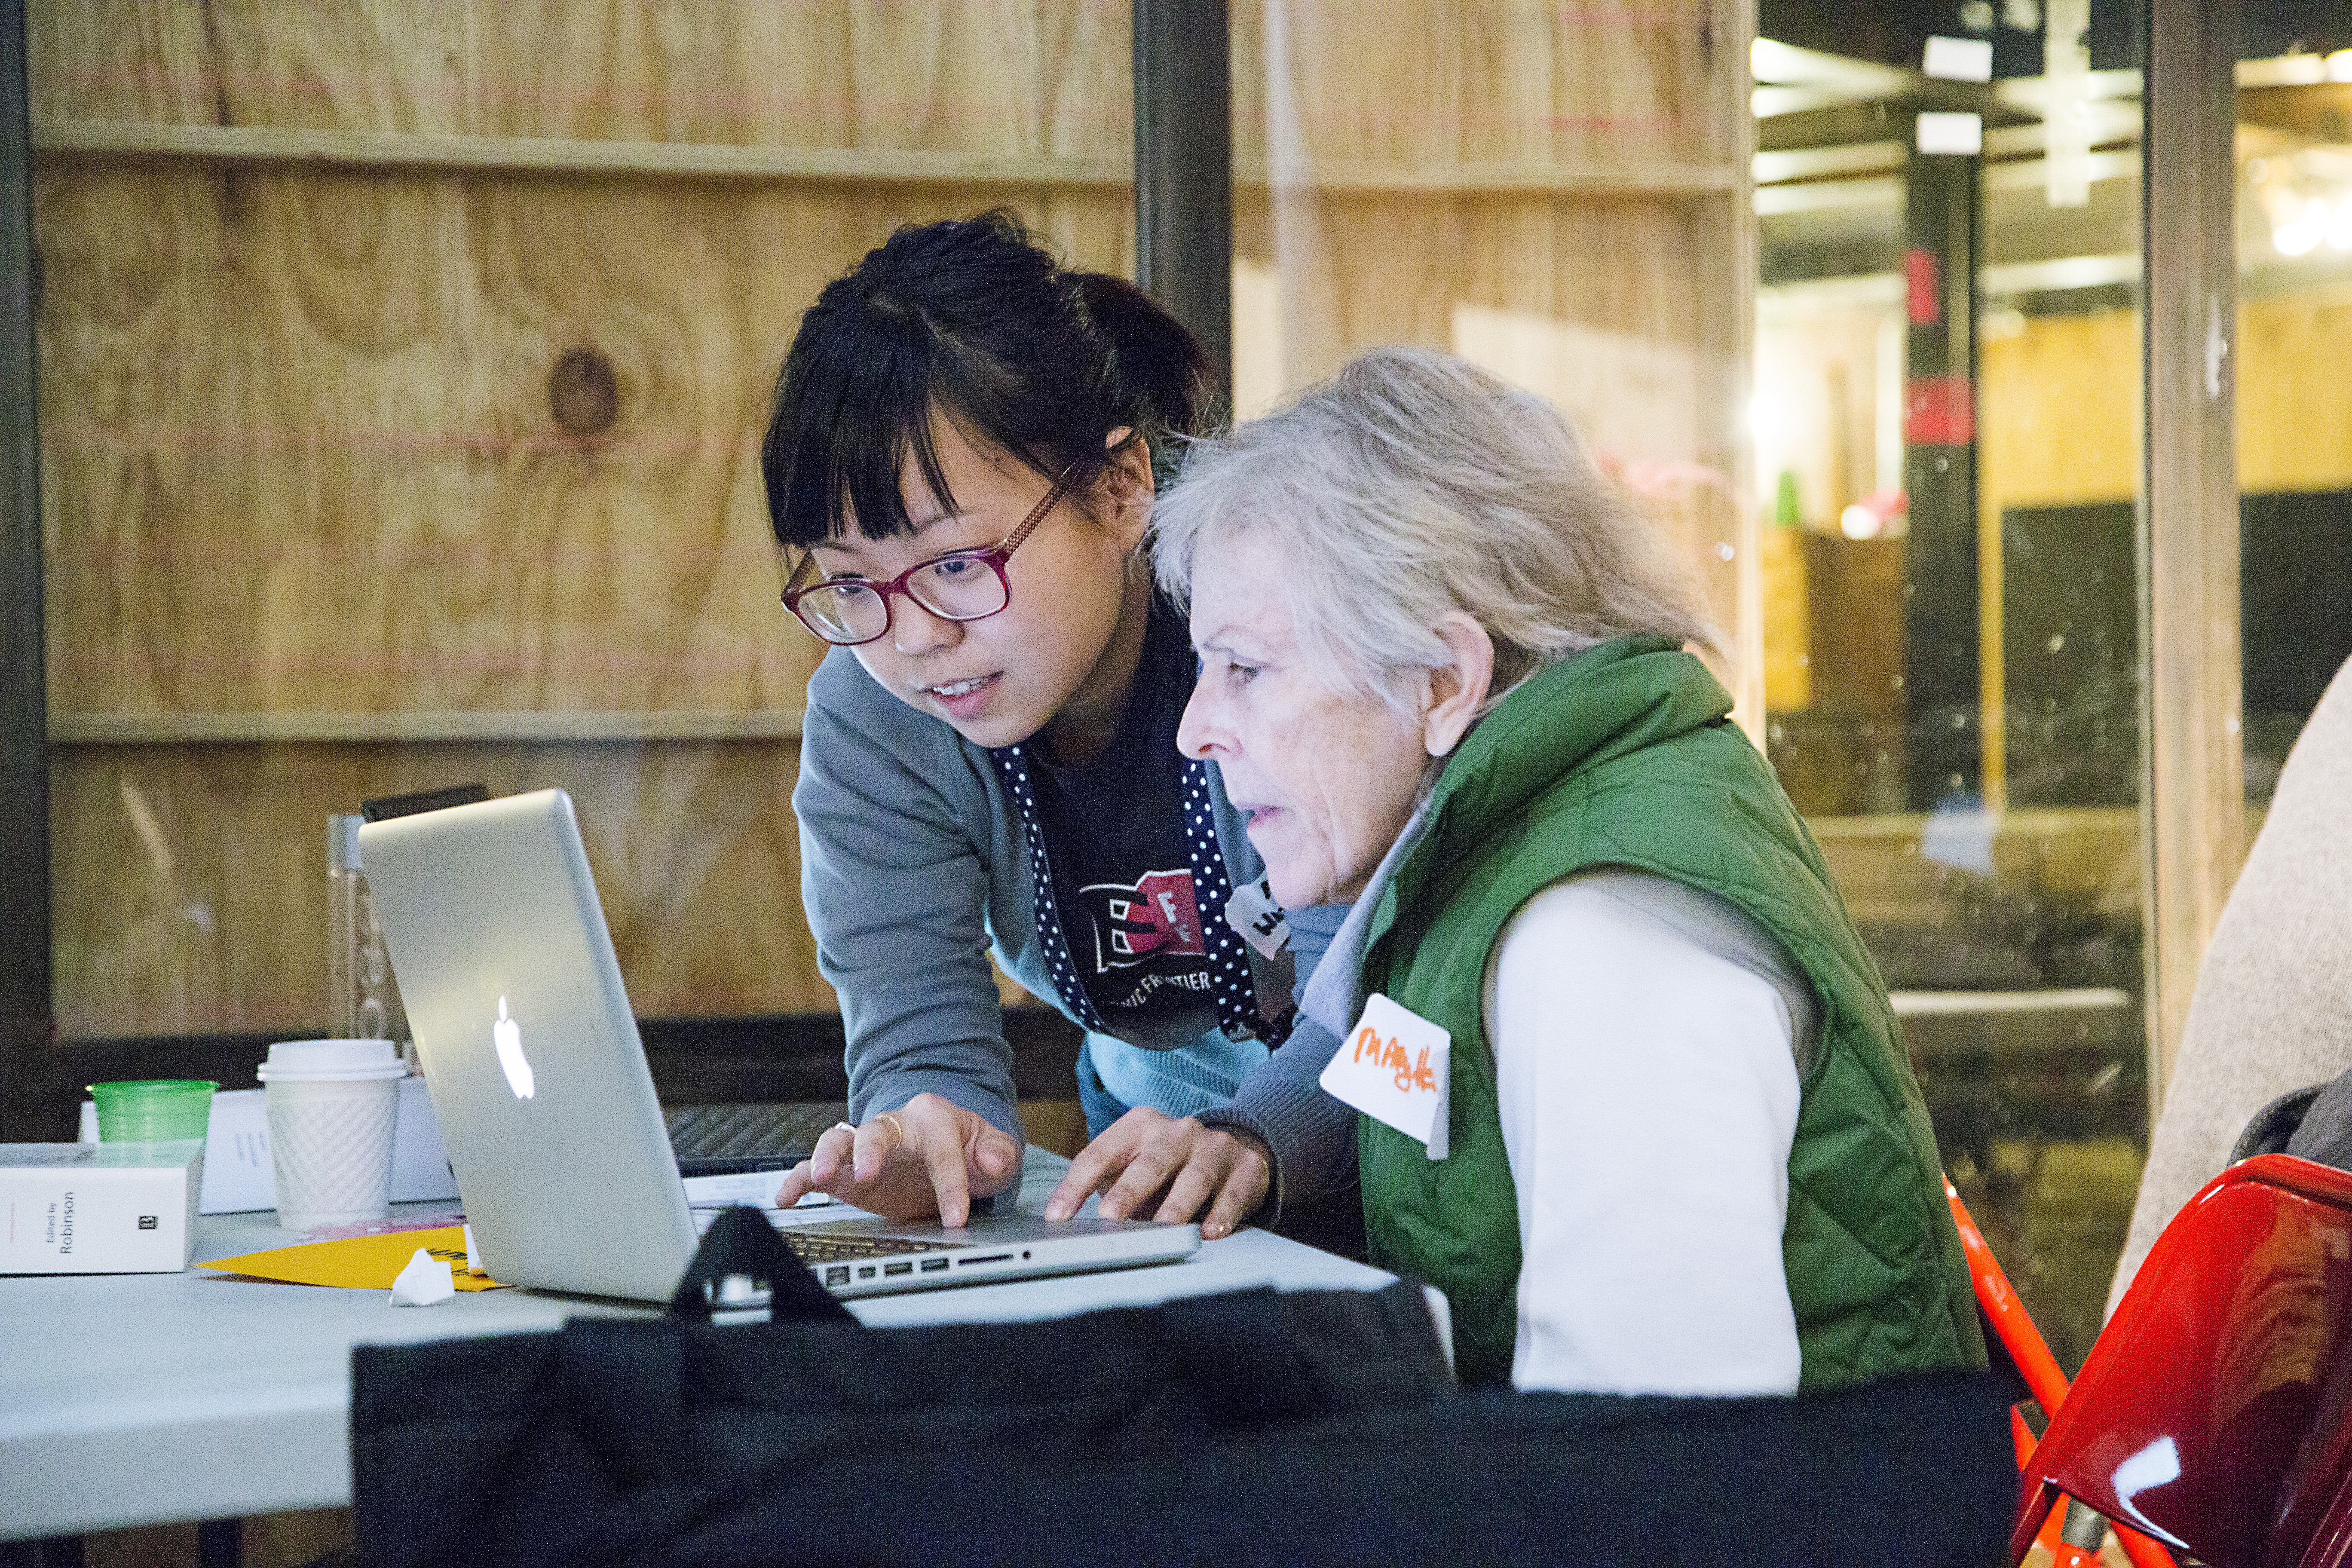 Intergenerational support at 2014 Art+Feminism Wikipedia Edit-a-thon at Eyebeam in New York City